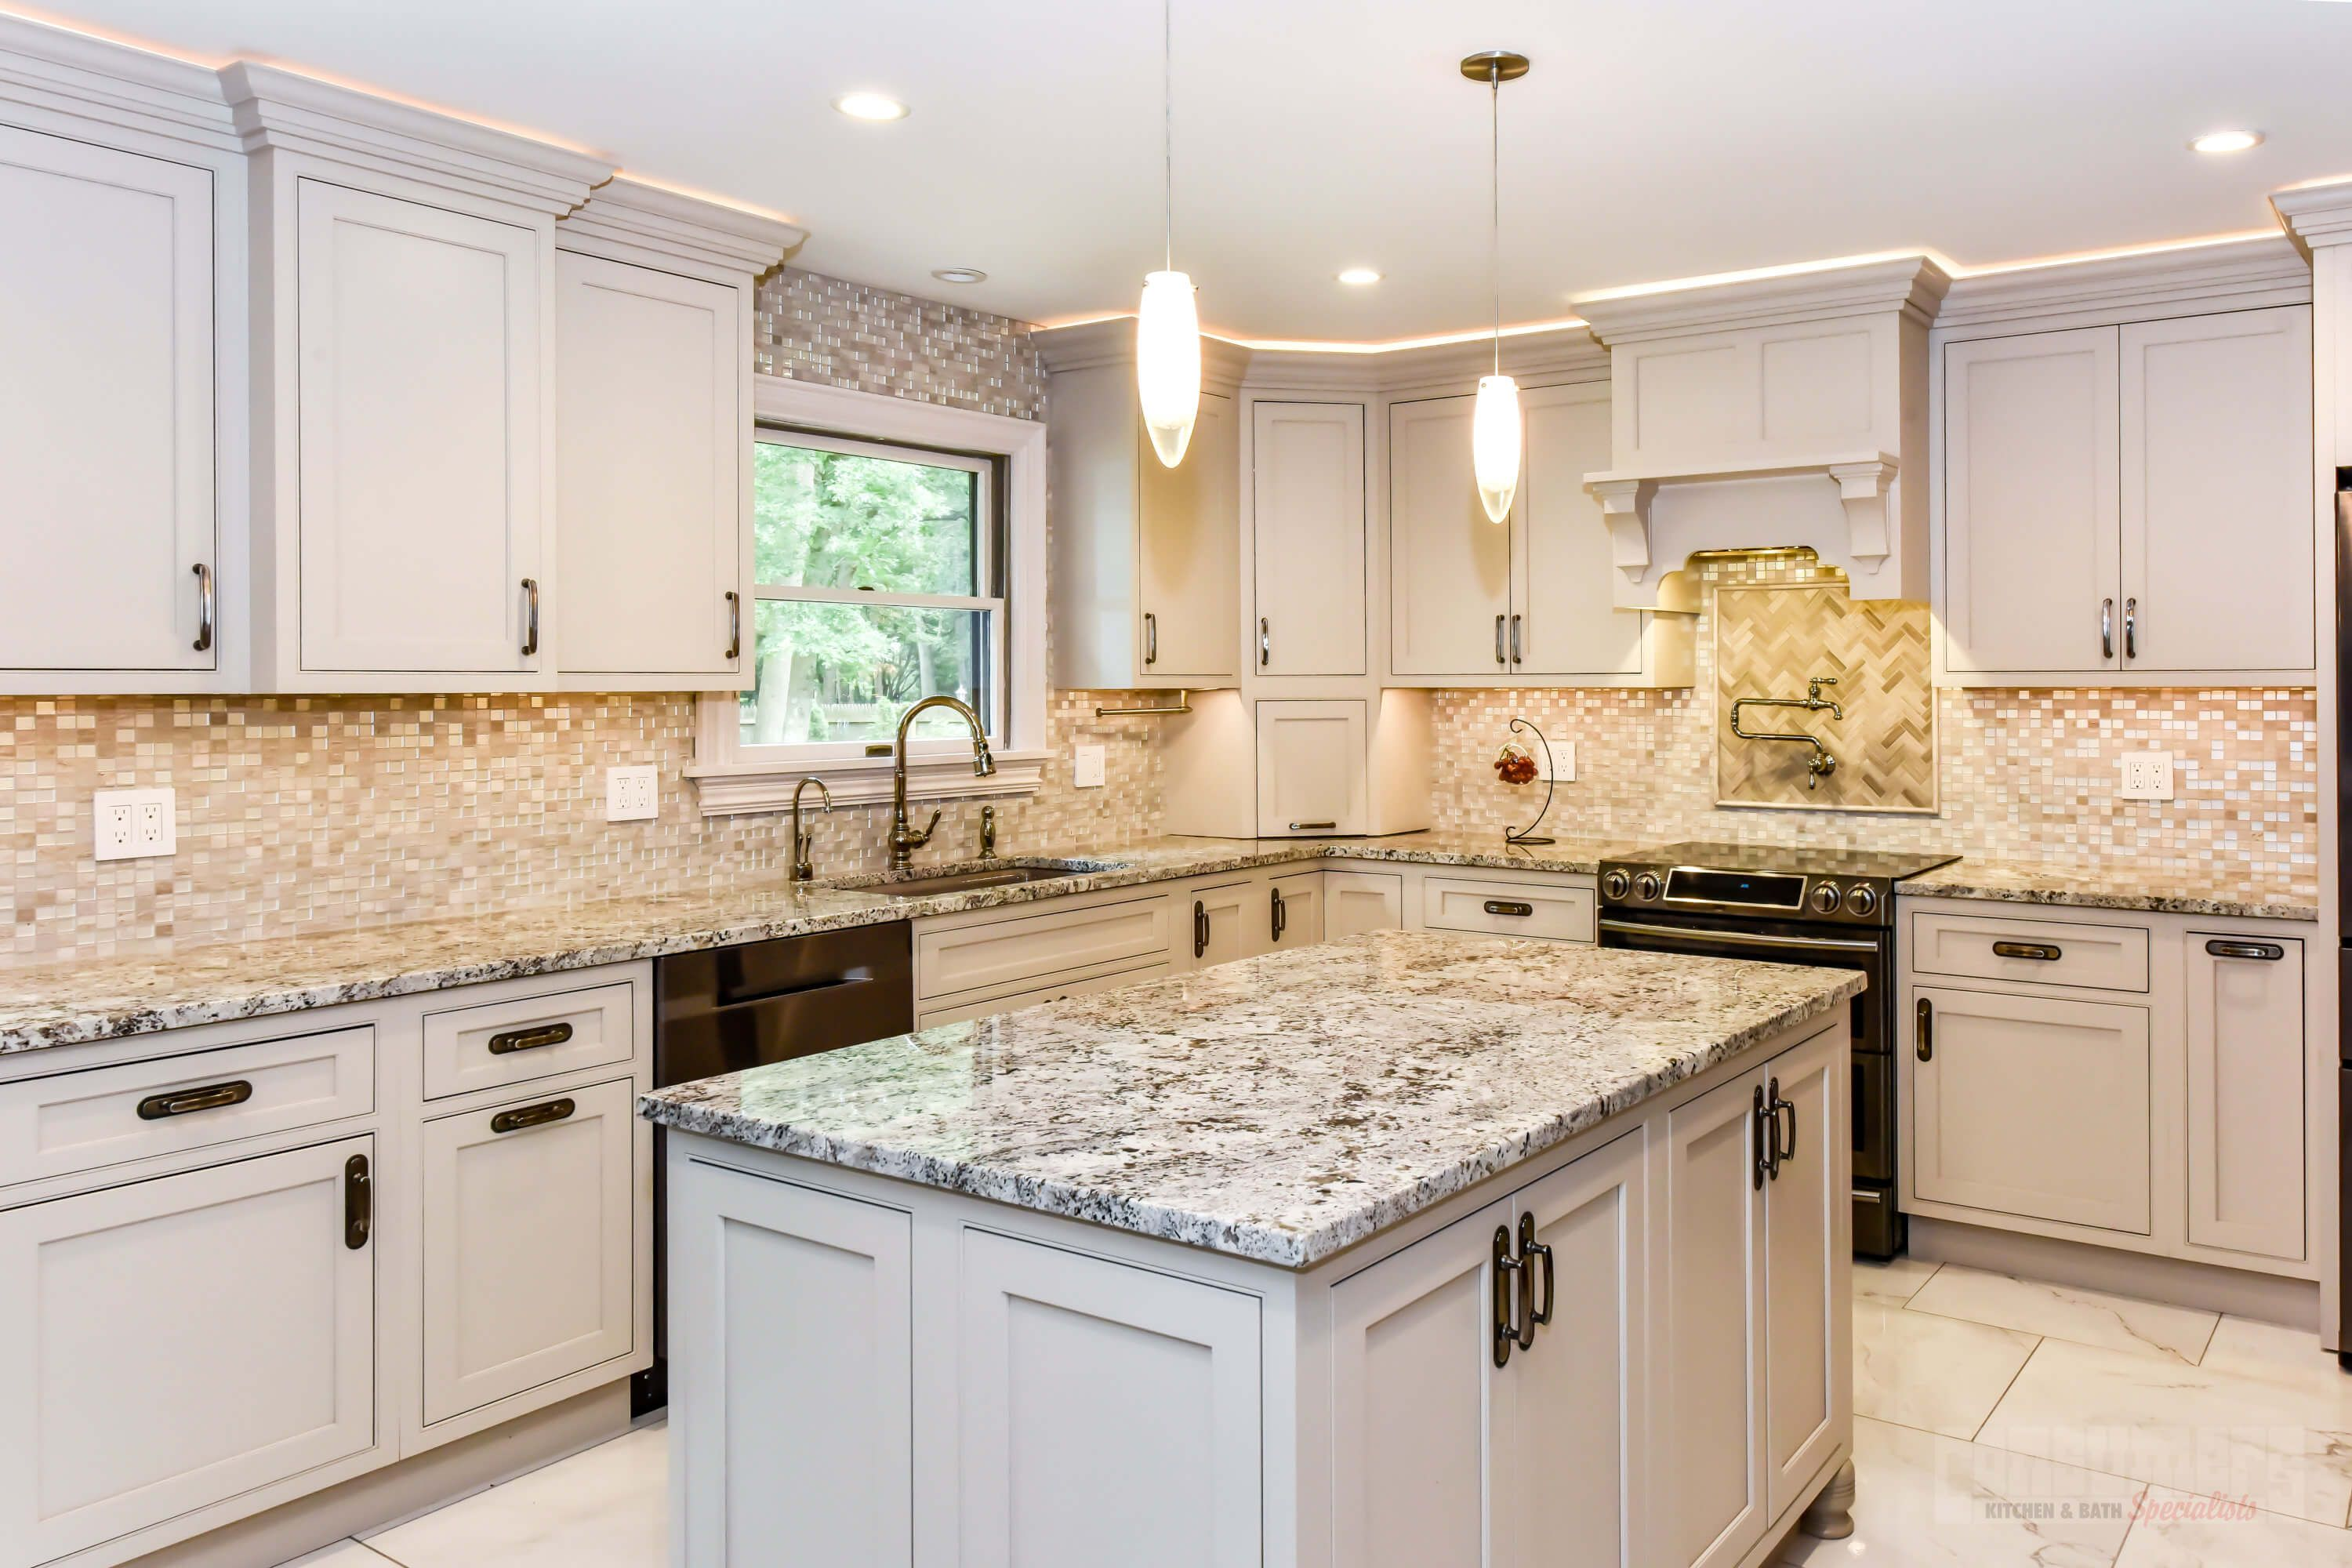 Pin By Consumers Kitchens Baths On Kitchen Free Kitchen Design Online Kitchen Cabinets Kitchen